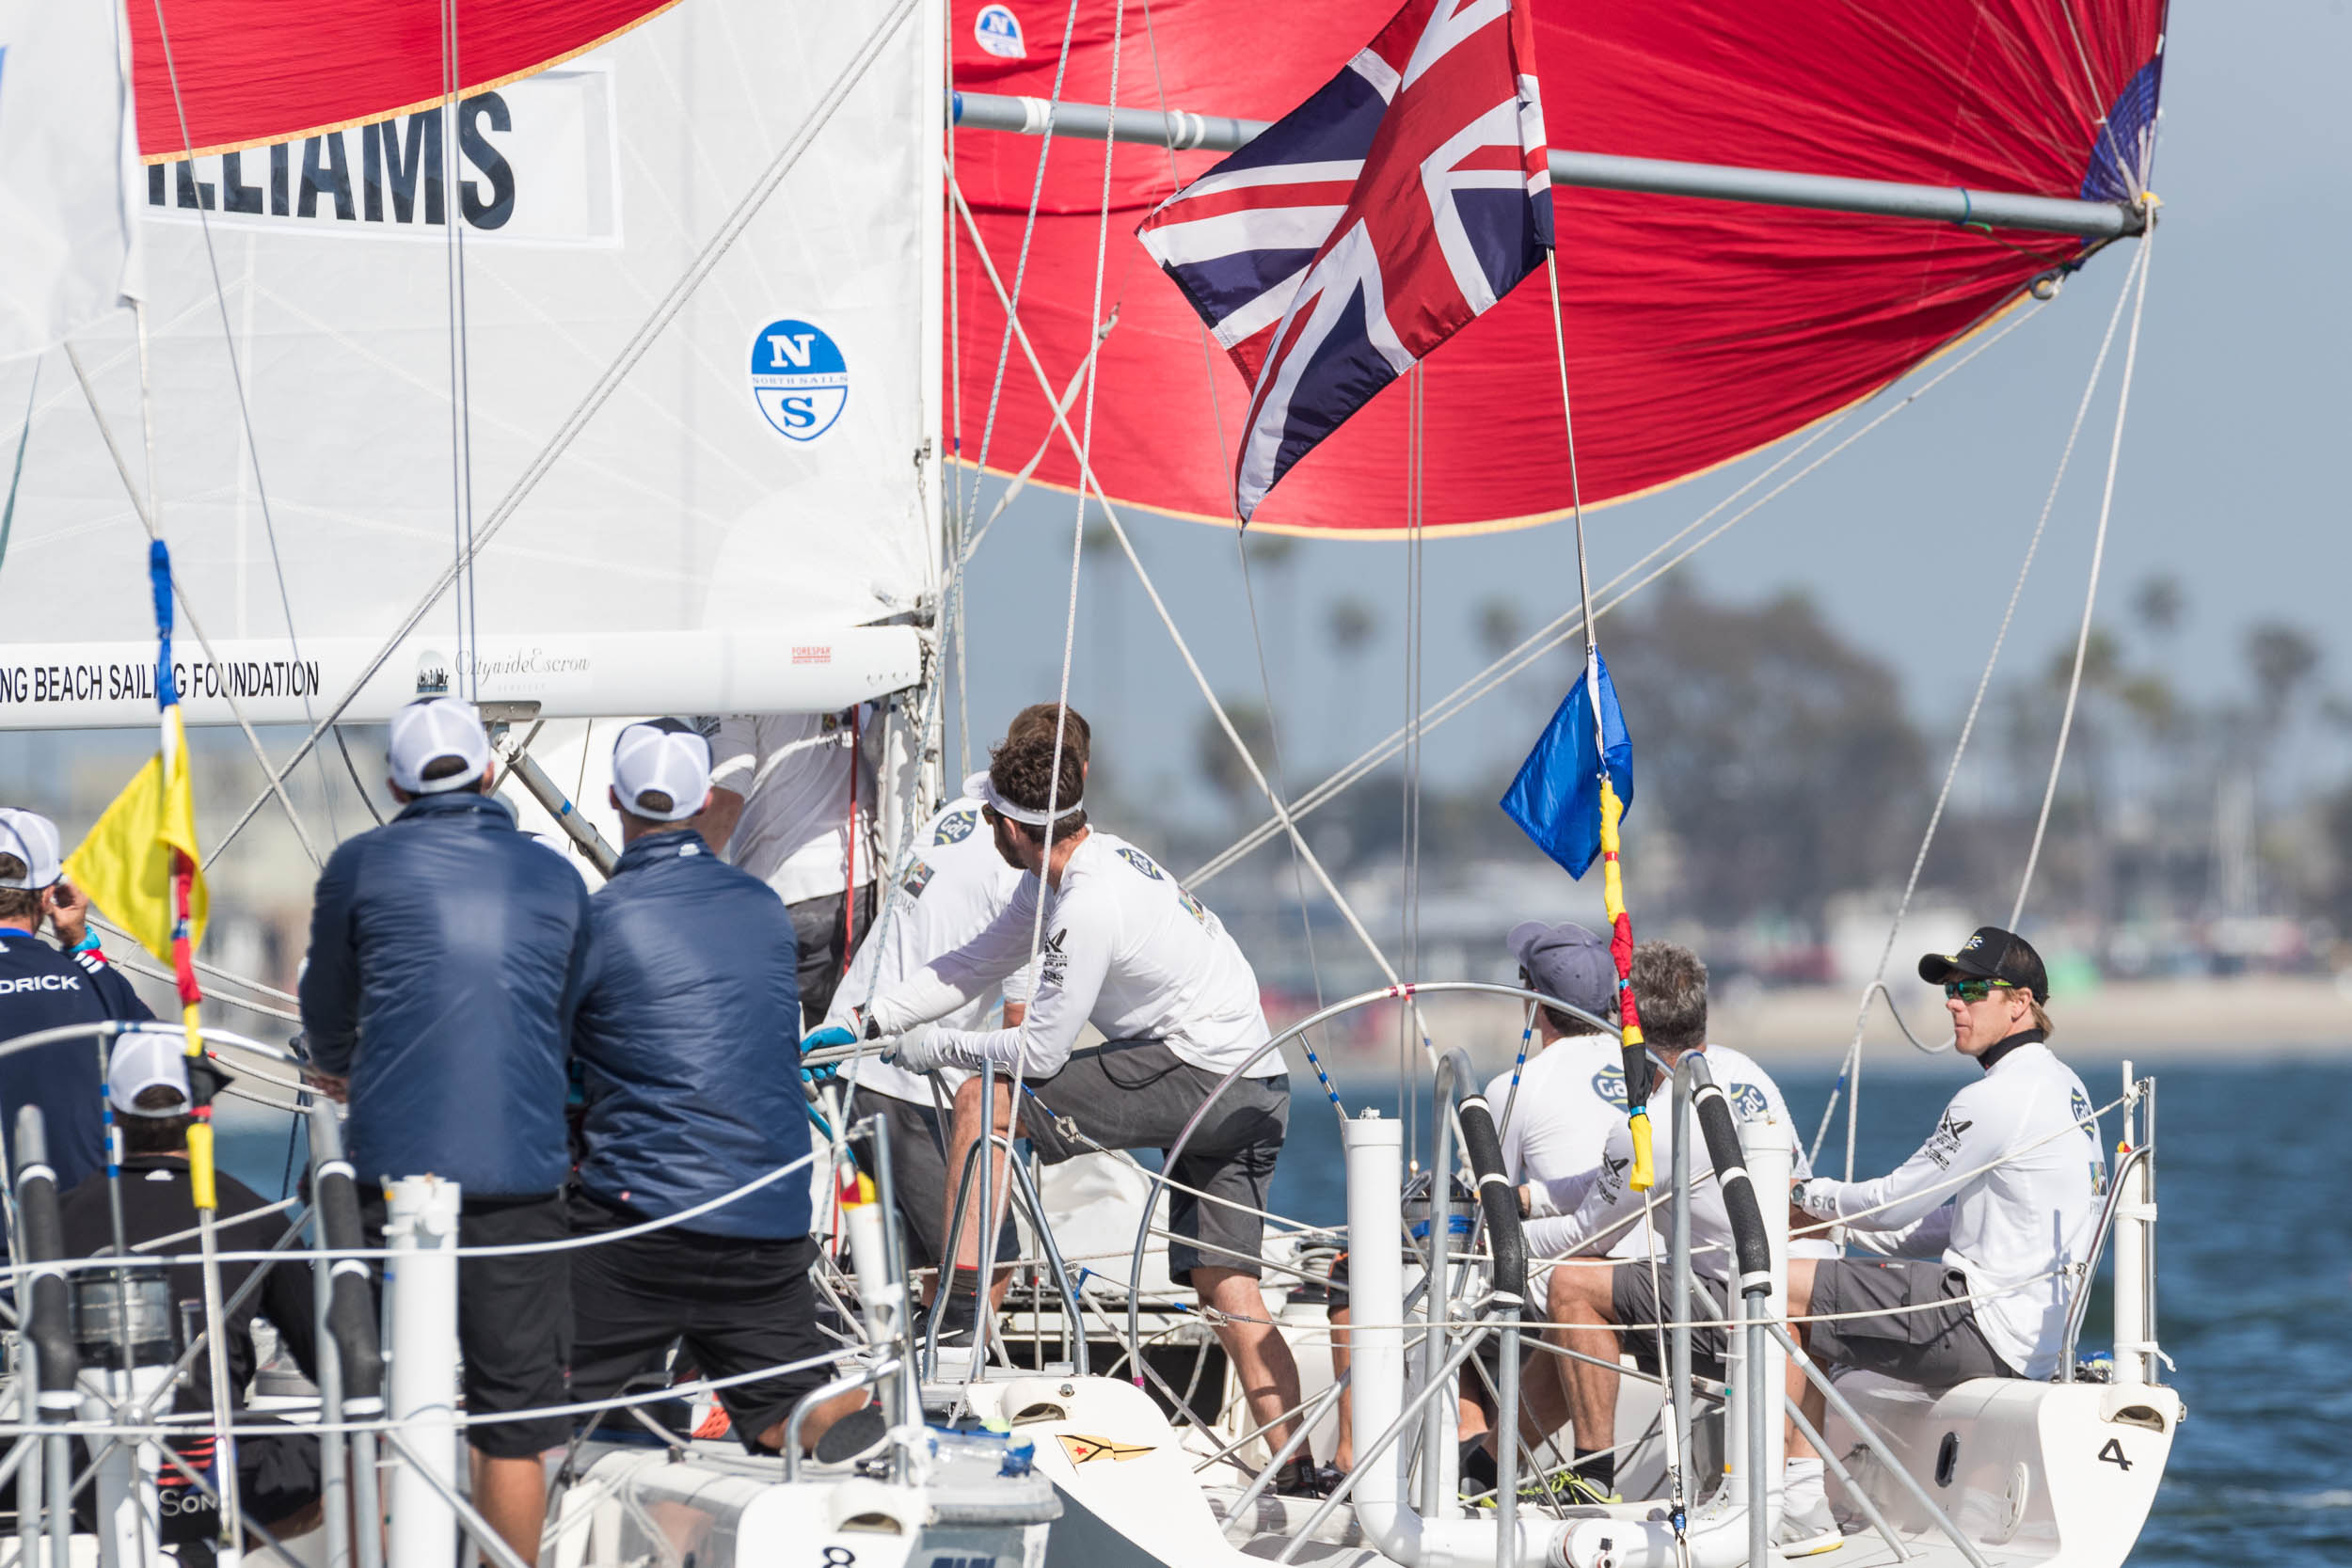 BERNTSSON AND WILLIAMS ON THE BRINK AT CONGRESSIONAL CUP